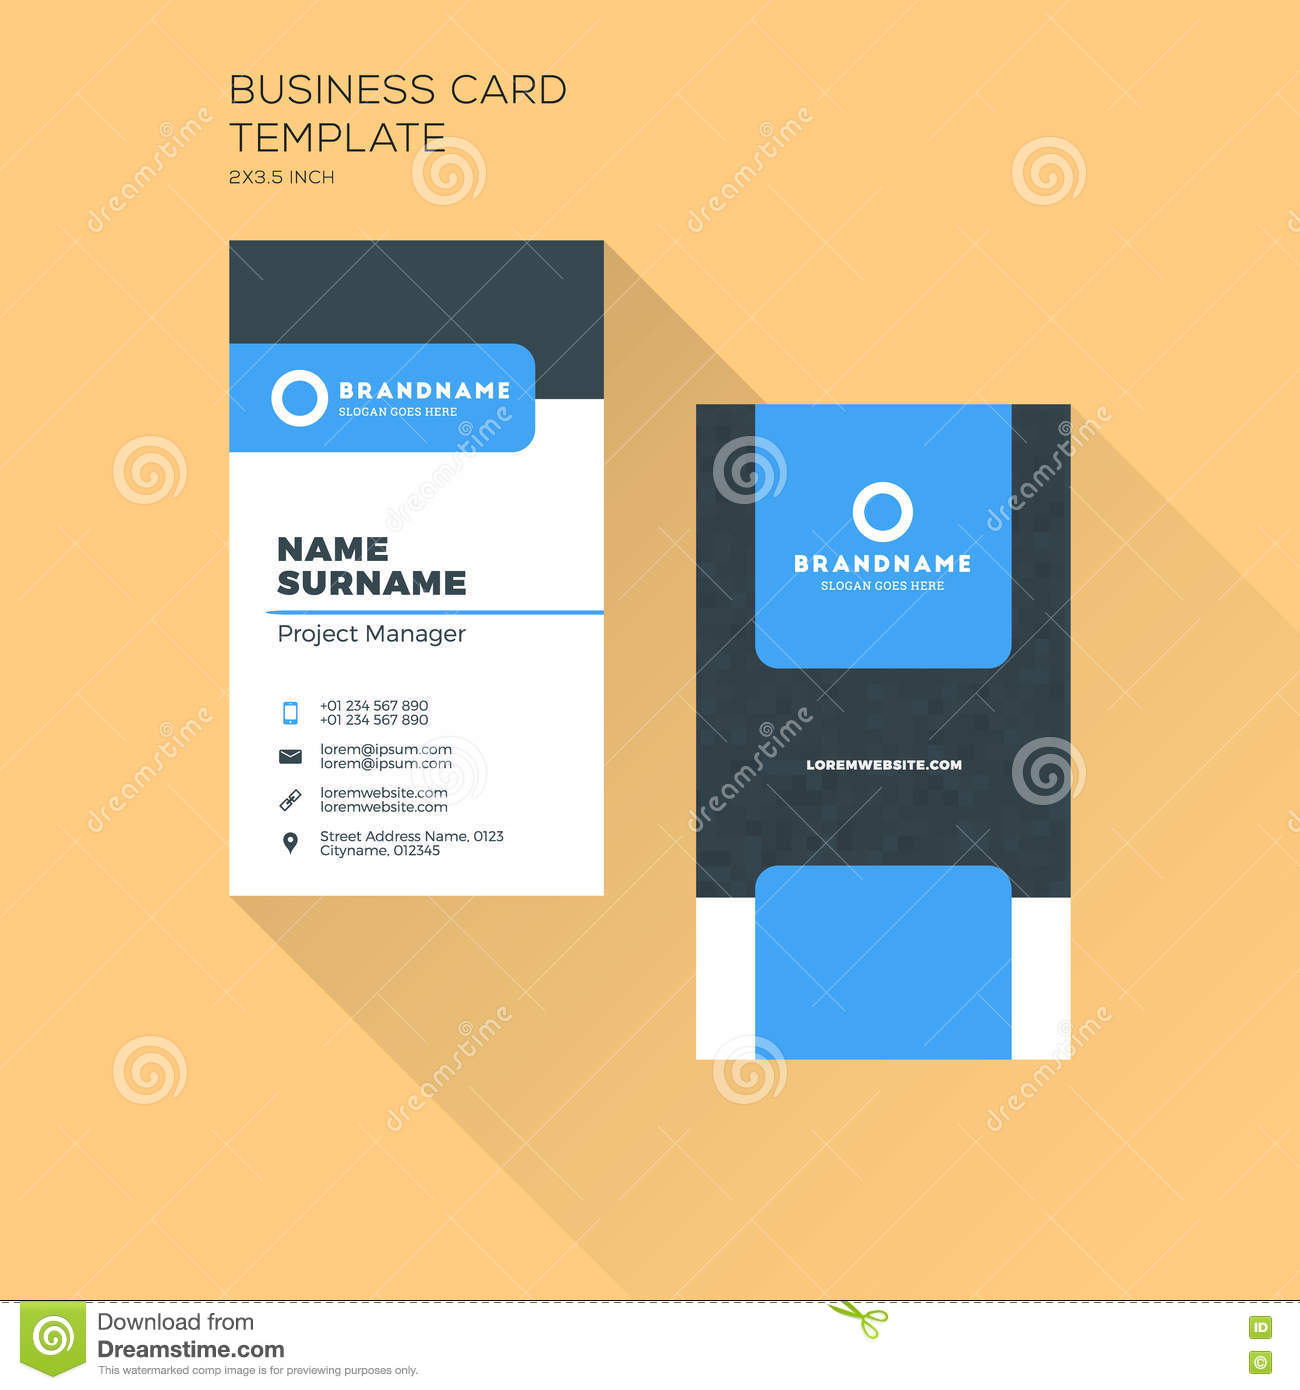 Vertical business card print template personal business card wi download vertical business card print template personal business card wi stock vector illustration of cheaphphosting Gallery